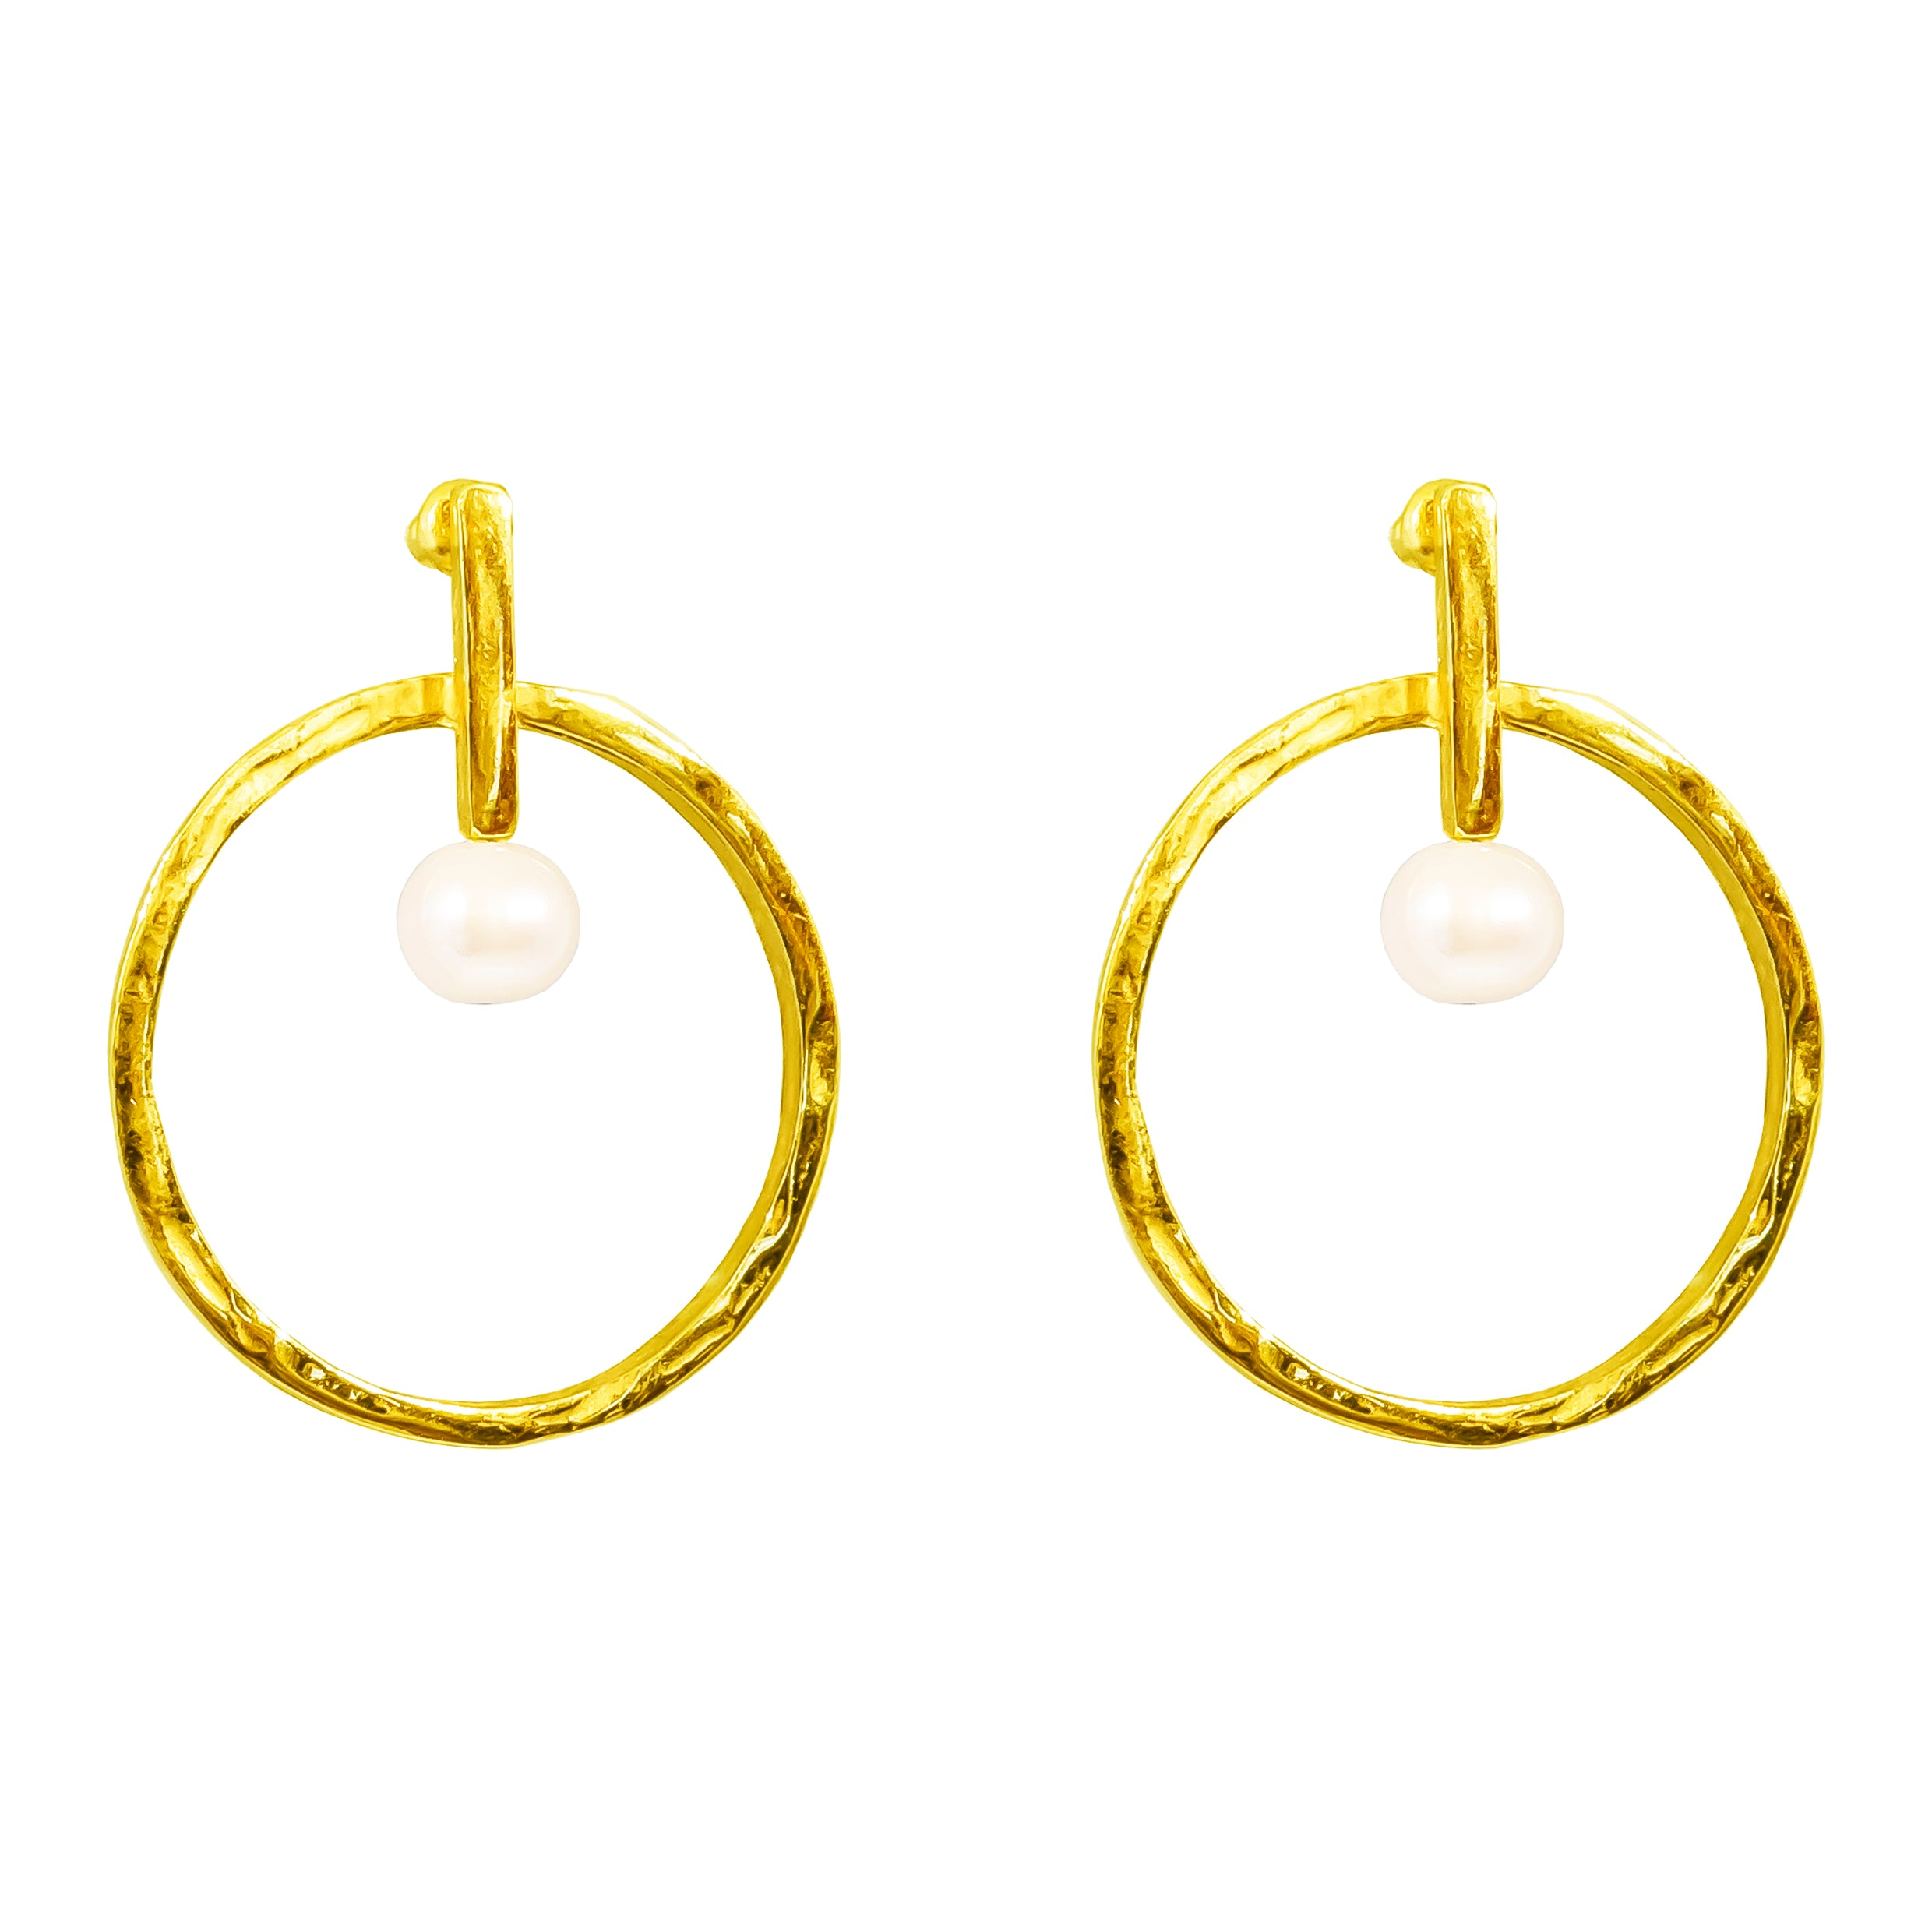 Taylor Large Earrings | Gold With Pearl Detail